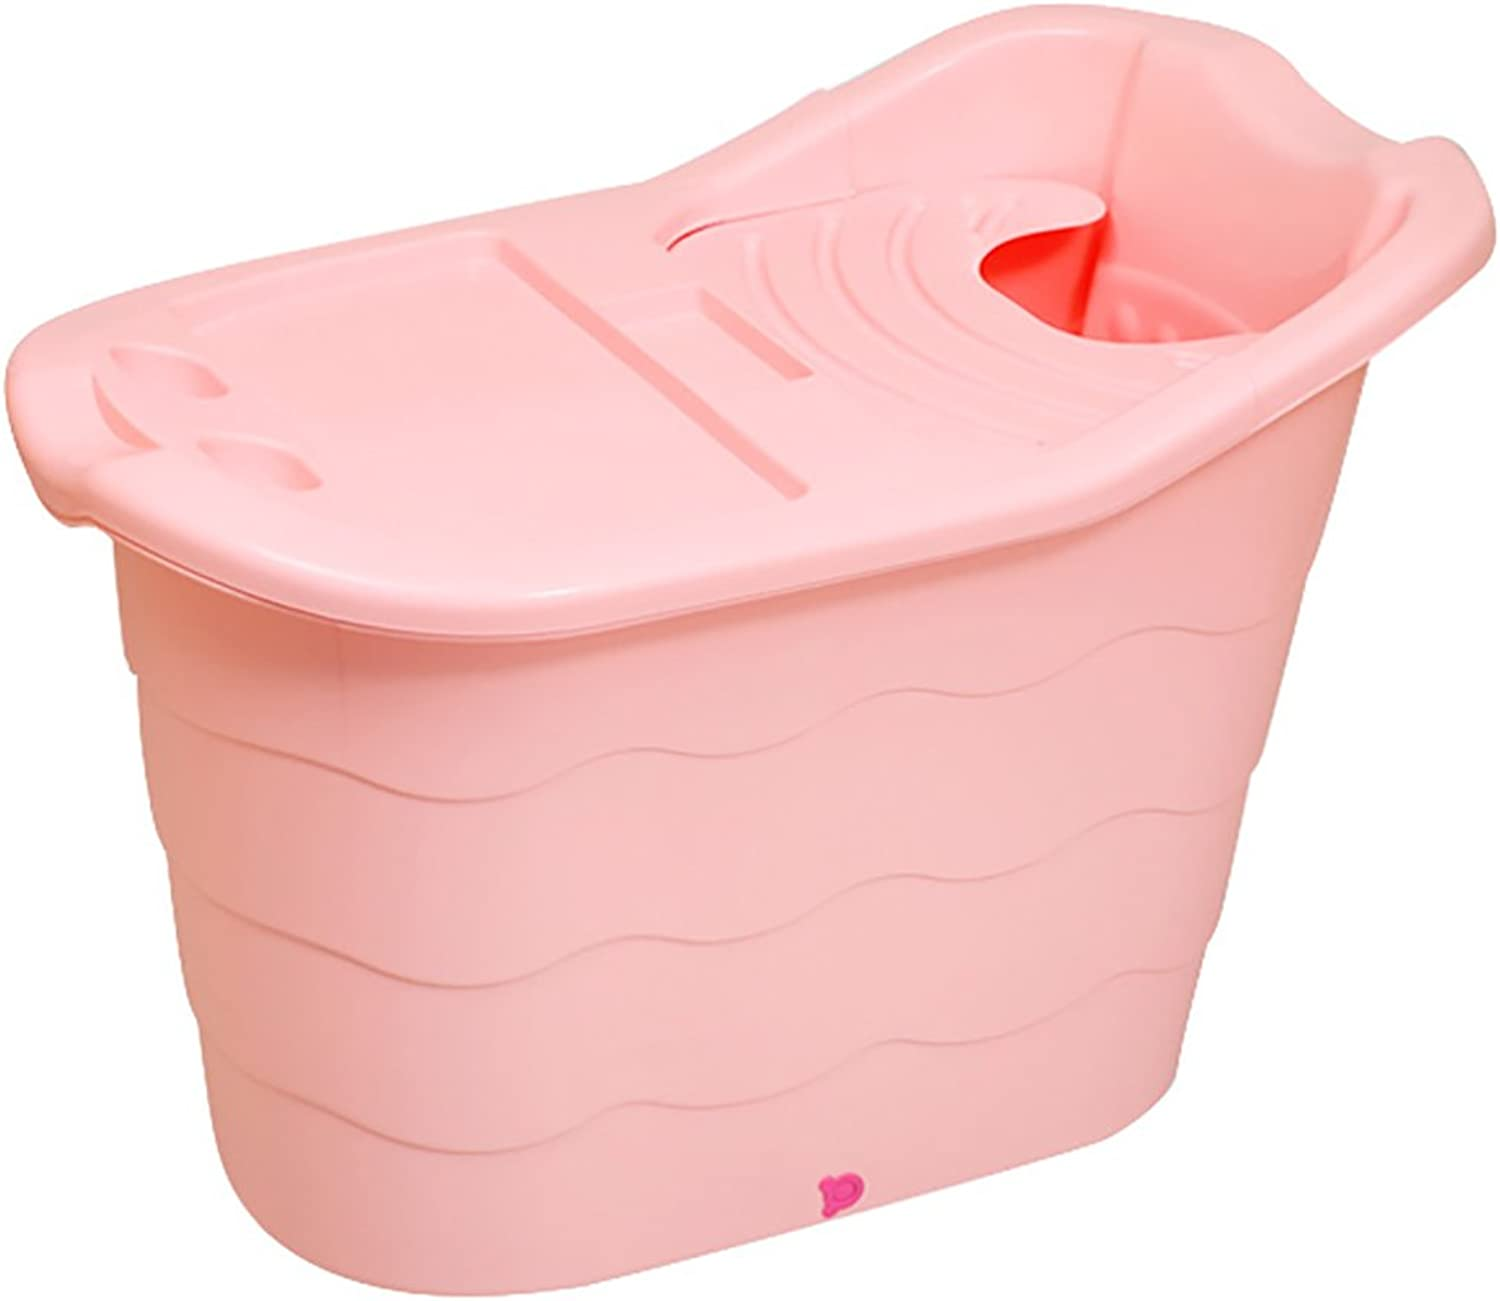 WENJUN Plastic Bath Tub Thicken Plastic Home Bath Tub Bath Tub Bath Tub Adult Bathtub Kids Bathtub Thermal Bathtub (color   PINK, Size   98  59  66 cm)